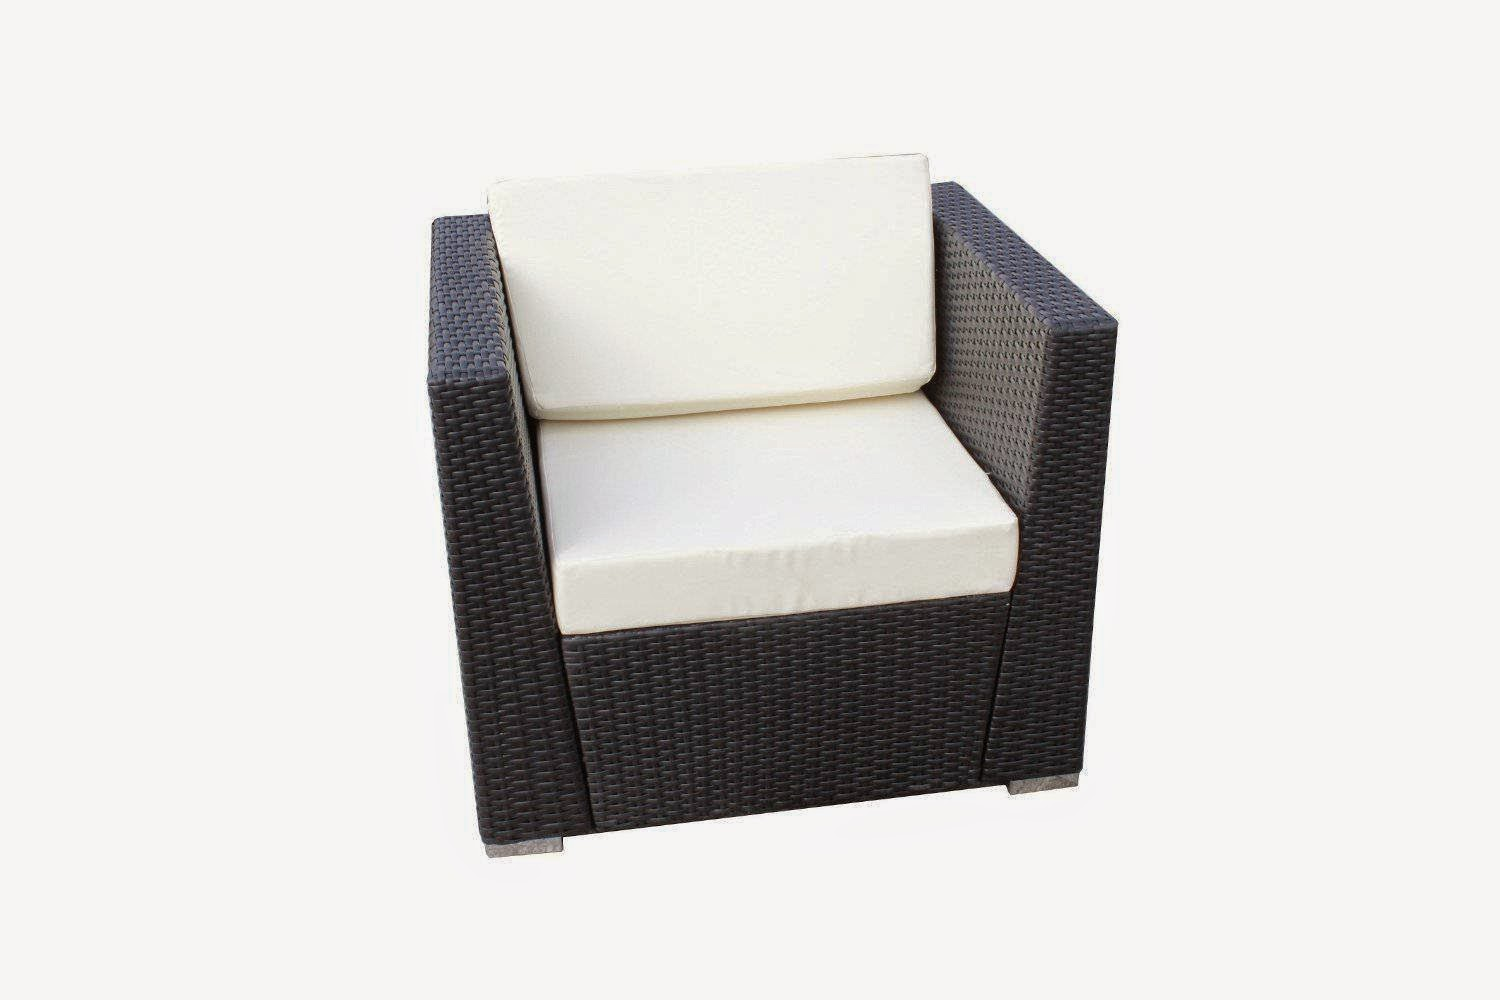 Wicker Chair Seat Cushion Covers Vintage Belmont Barber Chairs For Sale Off 86 Luxury Patio Sectional Indoor Outdoor